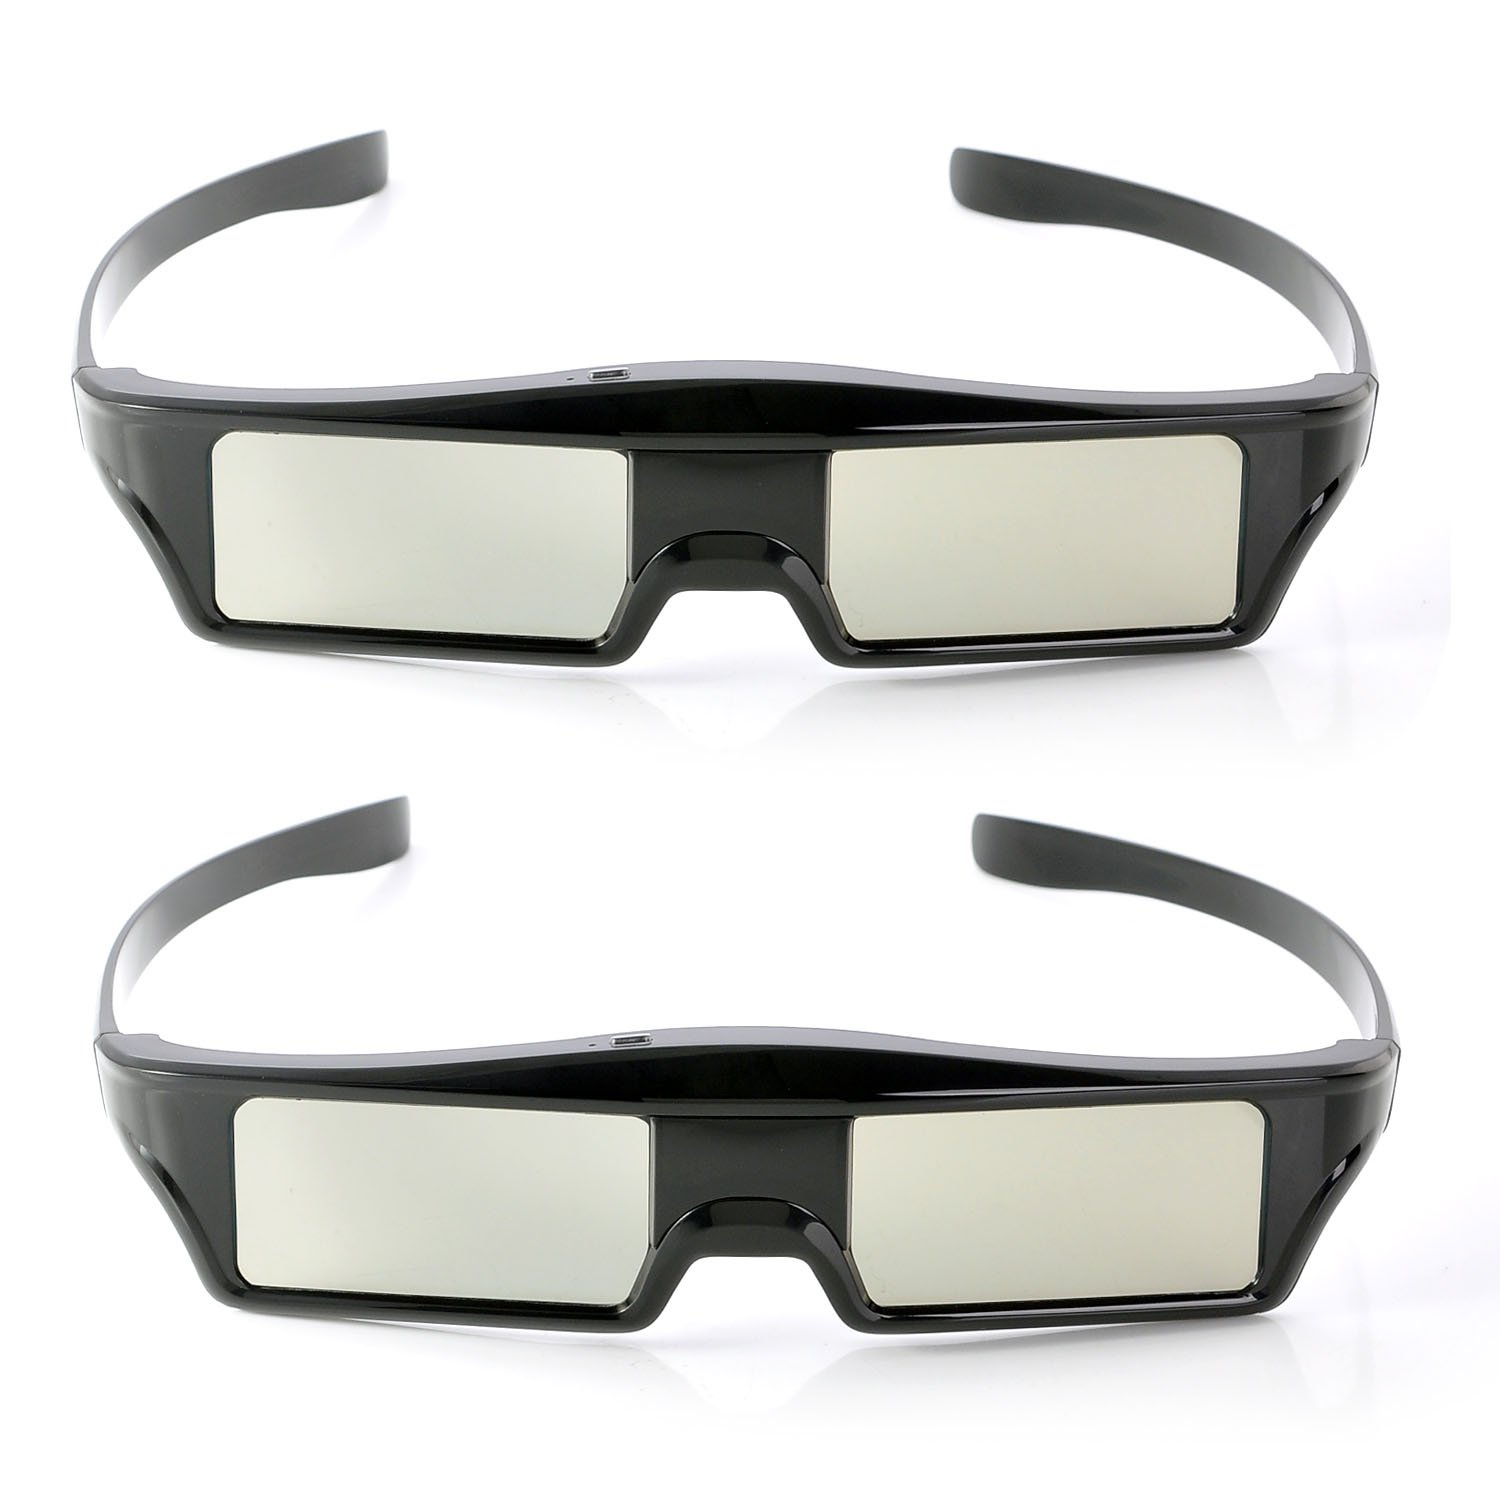 2x Replacement Wireless Active 3D Shutter Glasses Rechargeable for Epson  Projector Eyewear RF ELPGS03 b4995b13446